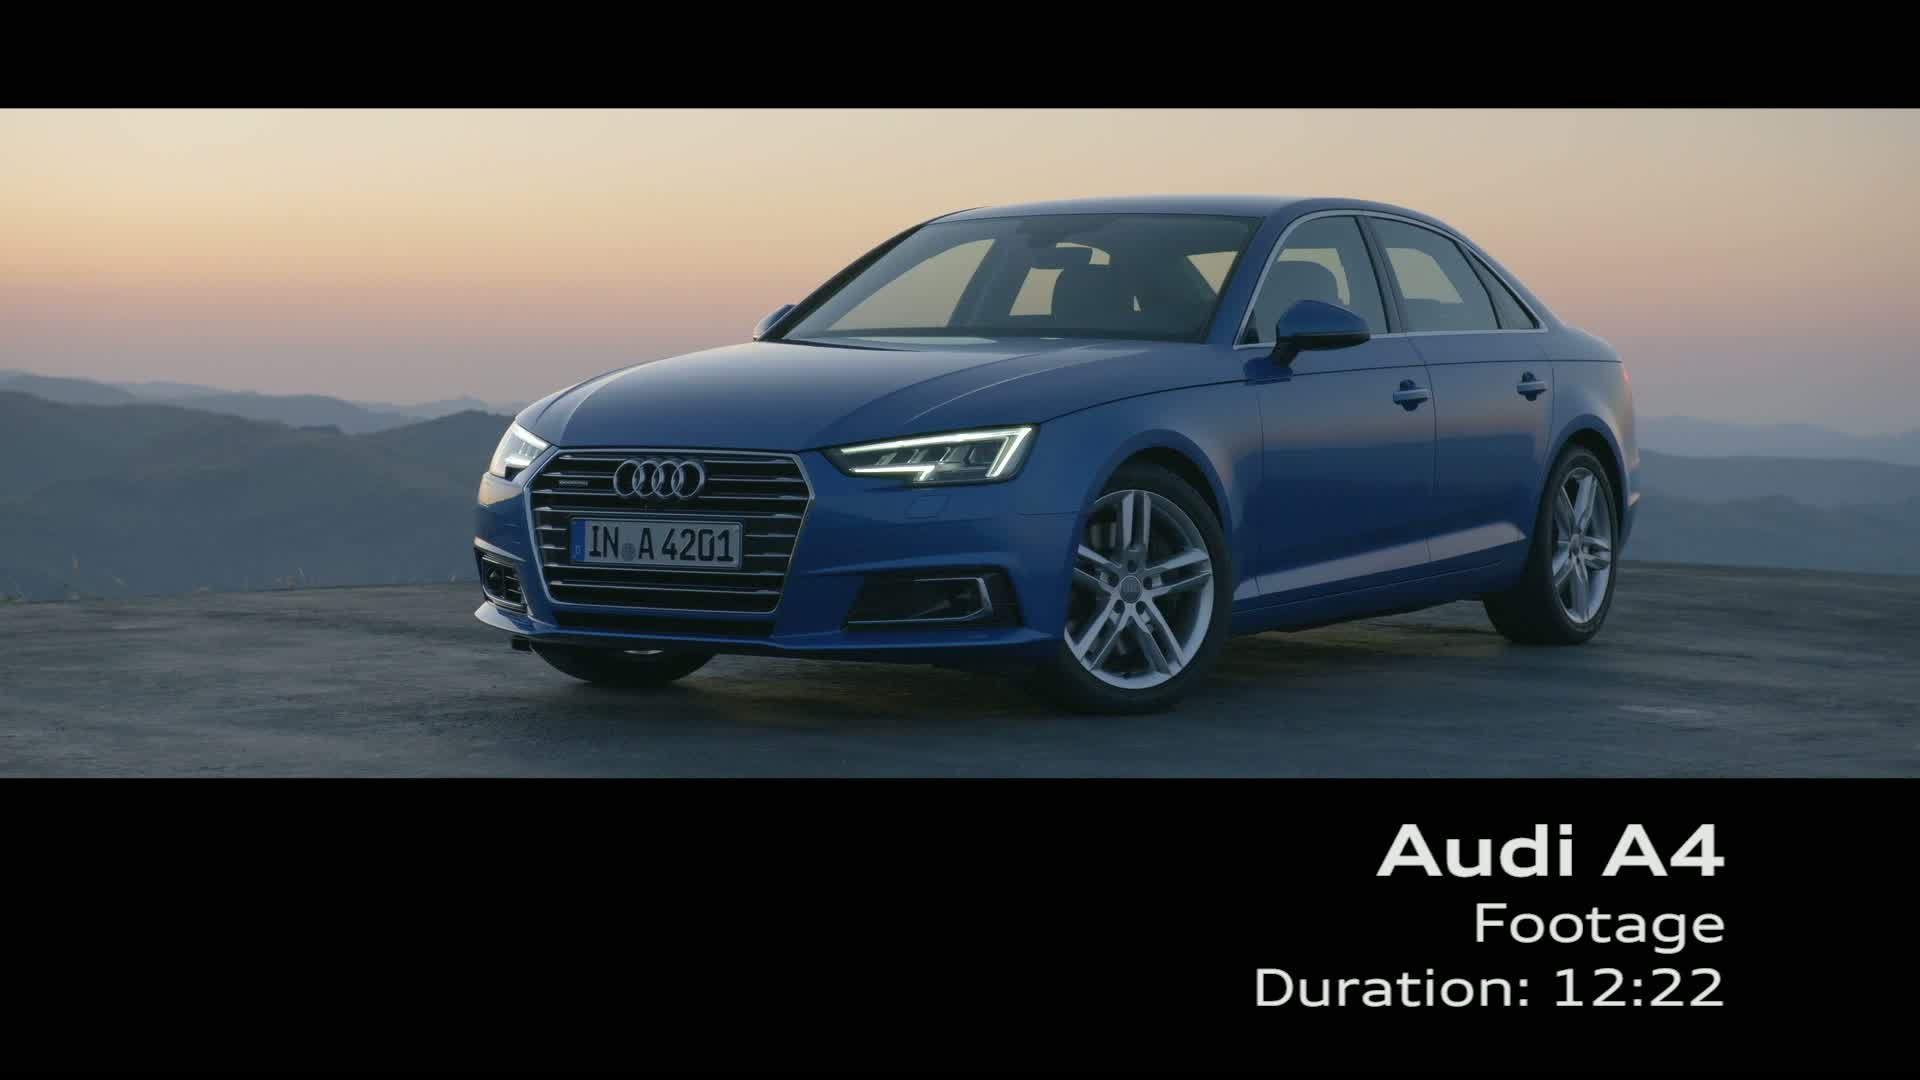 The new Audi A4 Sedan - Footage